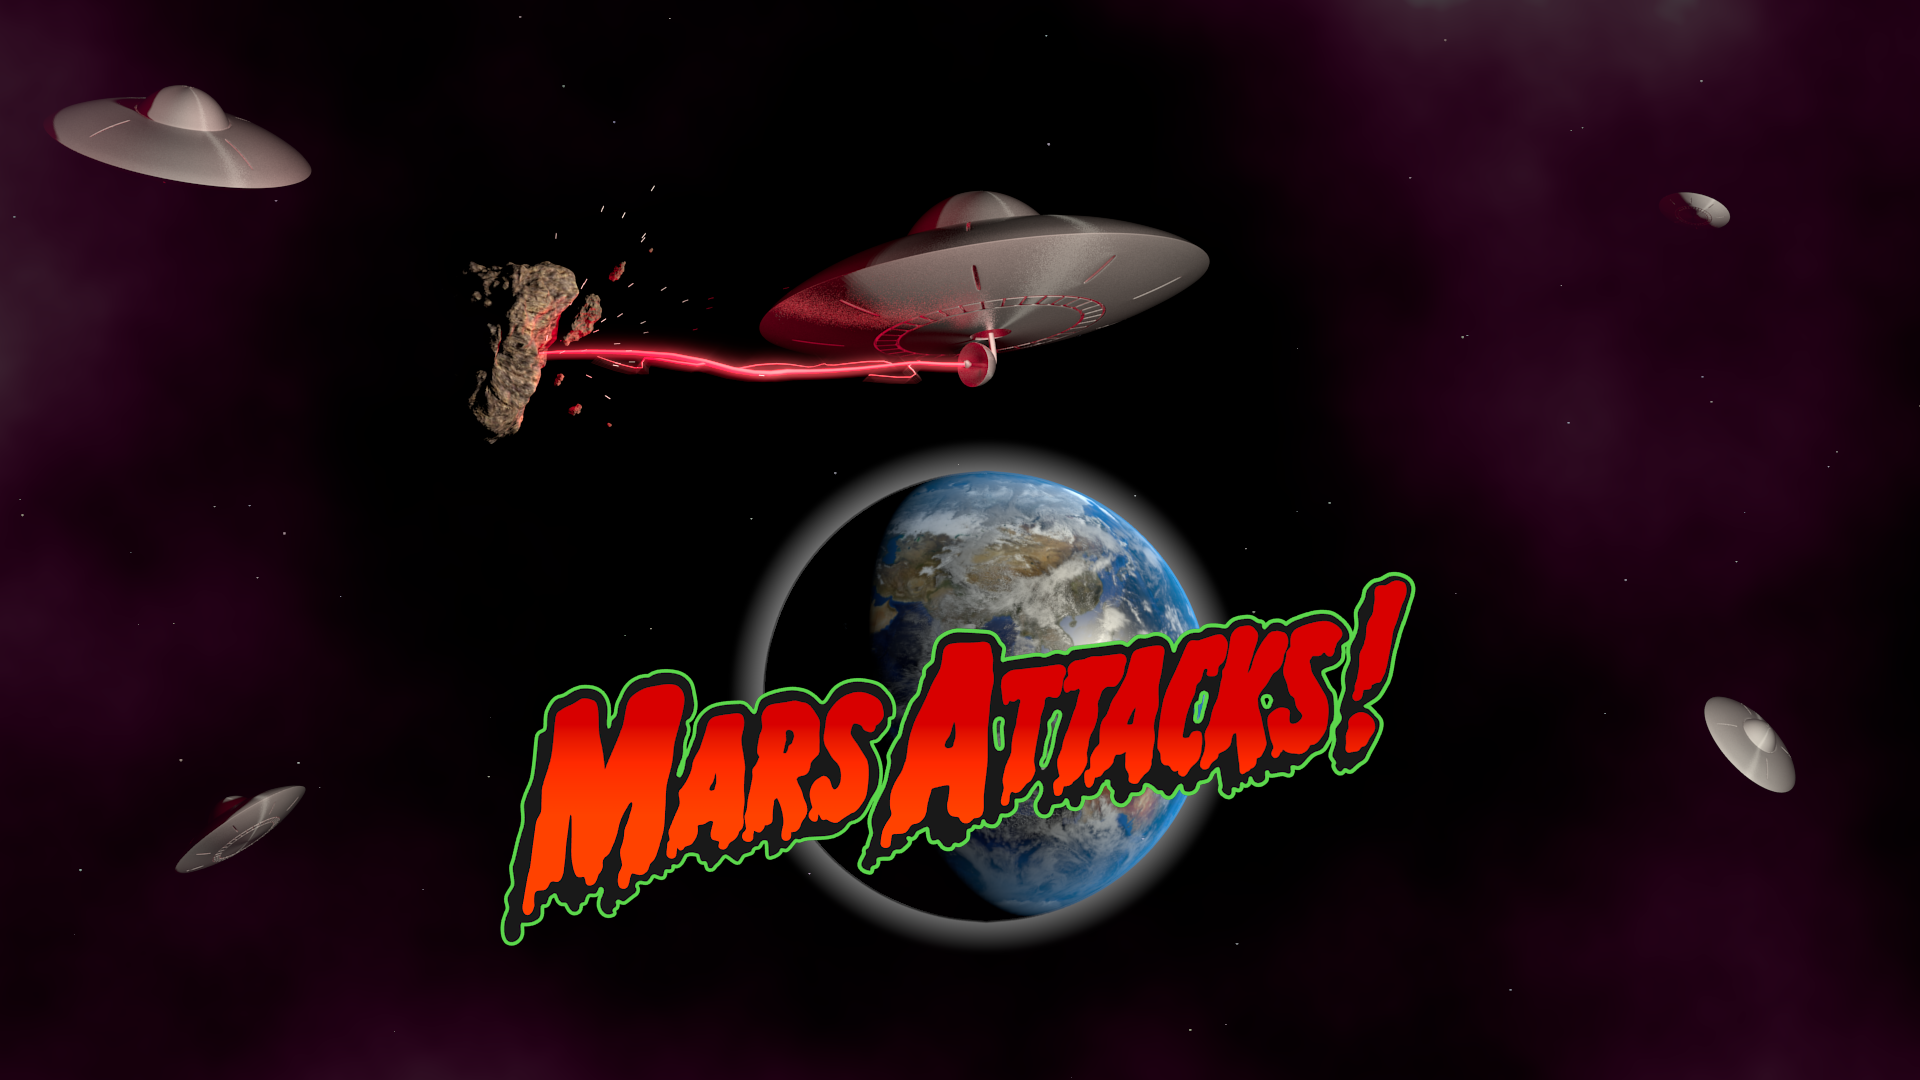 Free Download Mars Attacks Wallpapers 1920x1080 For Your